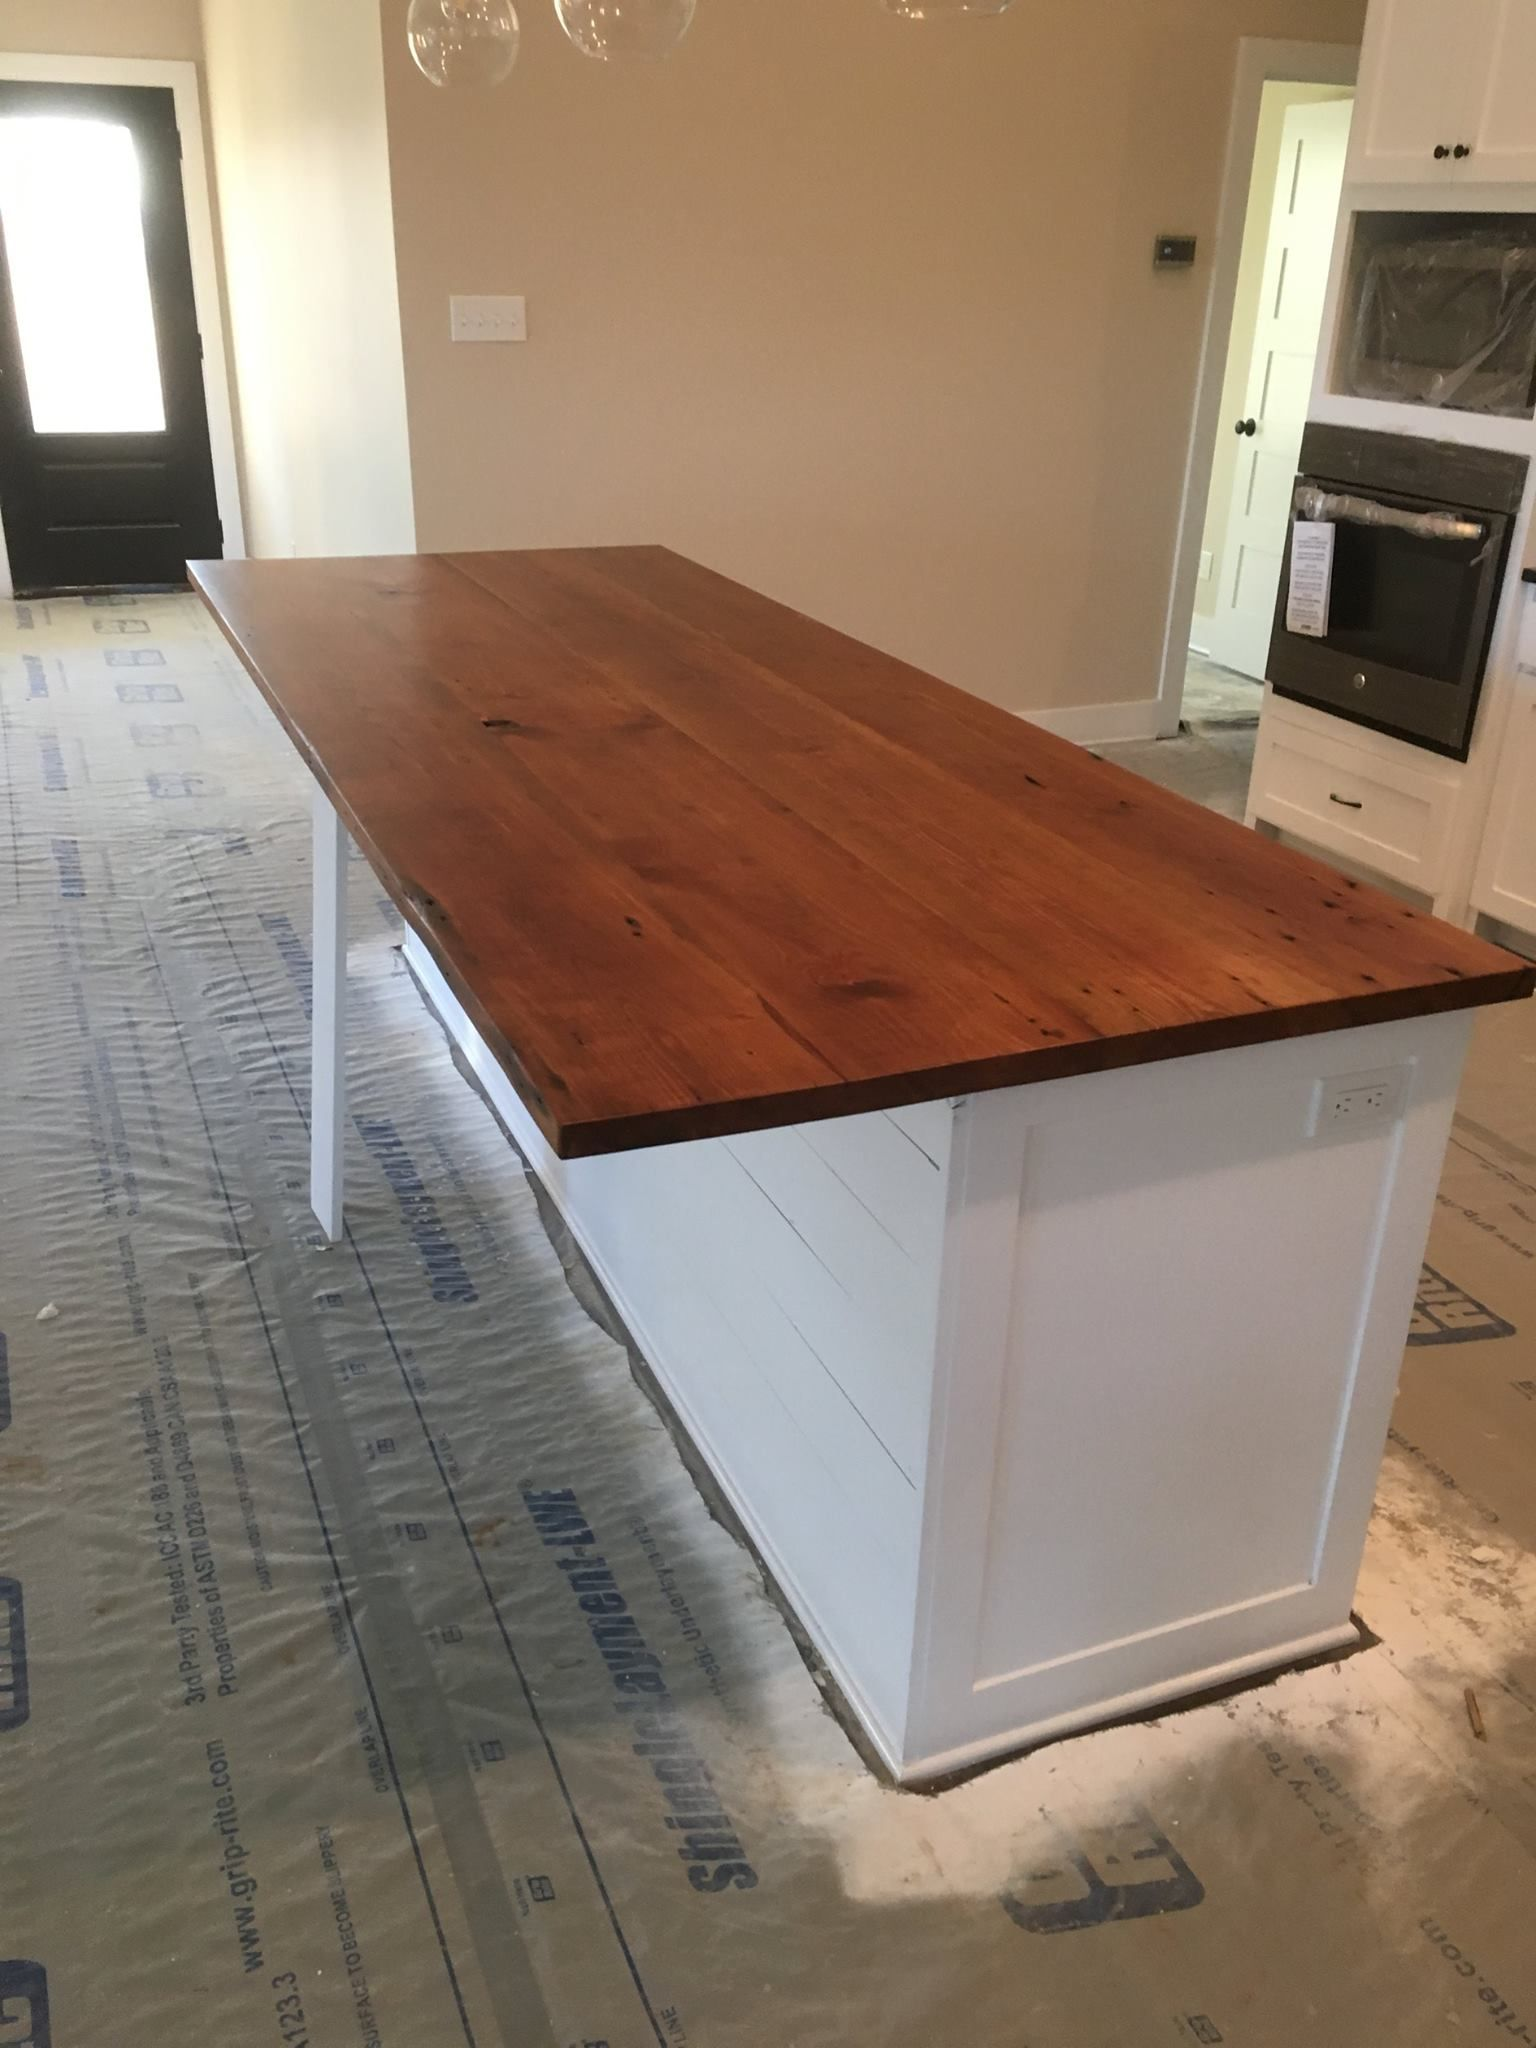 Reclaimed Lumber Kitchen Island Built Using Our Lumber Antique Lumber Company Shiplap Kitchen Reclaimed Wood Lumber